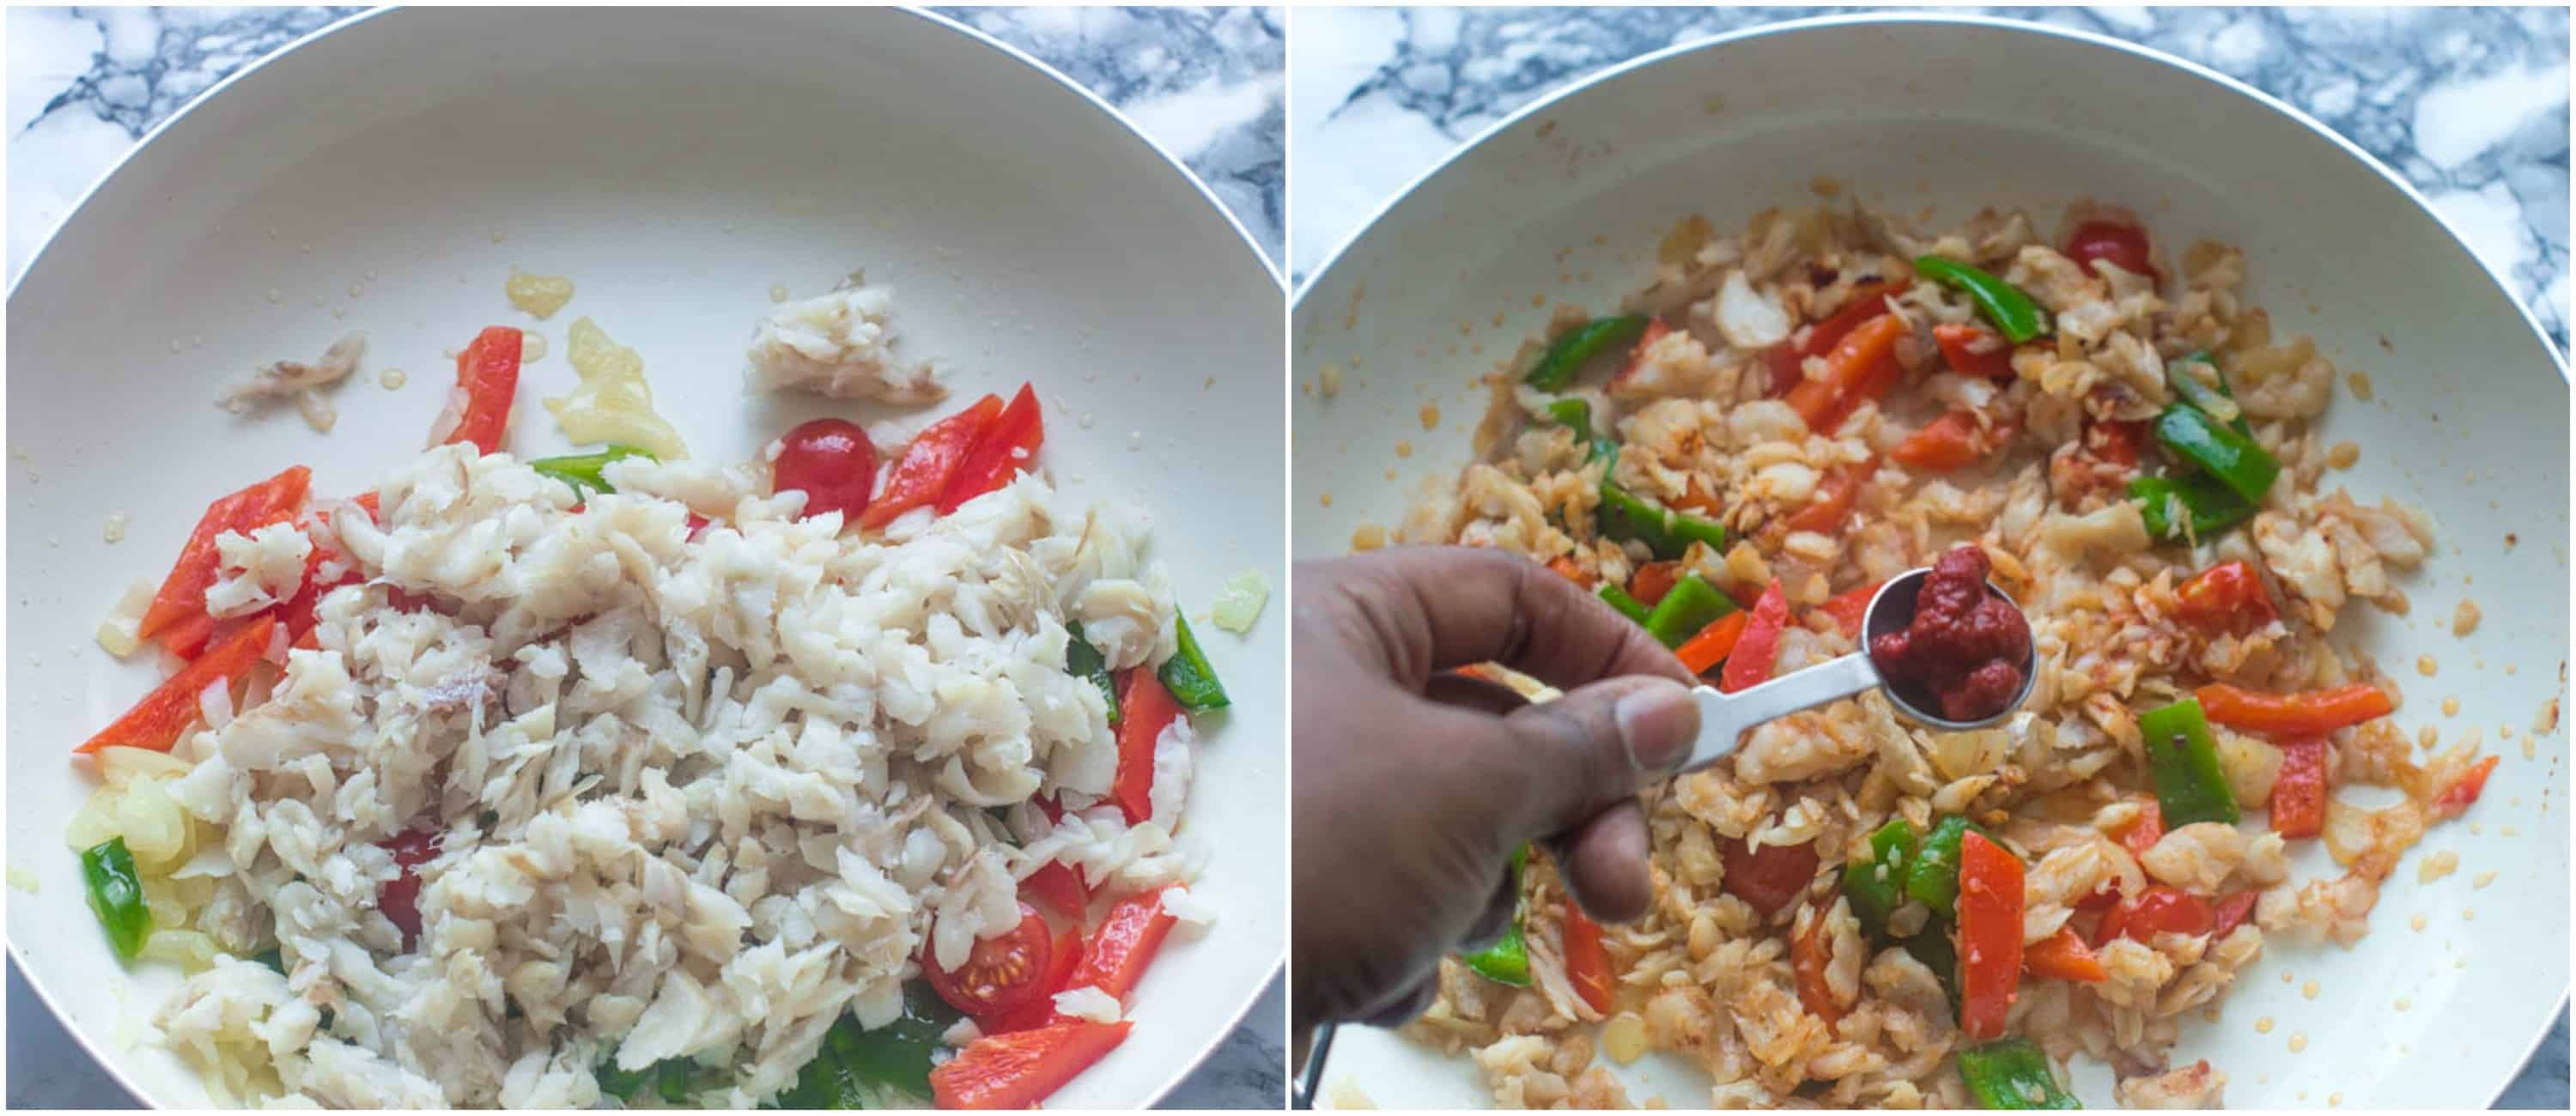 ackee and saltfish steps 3-4